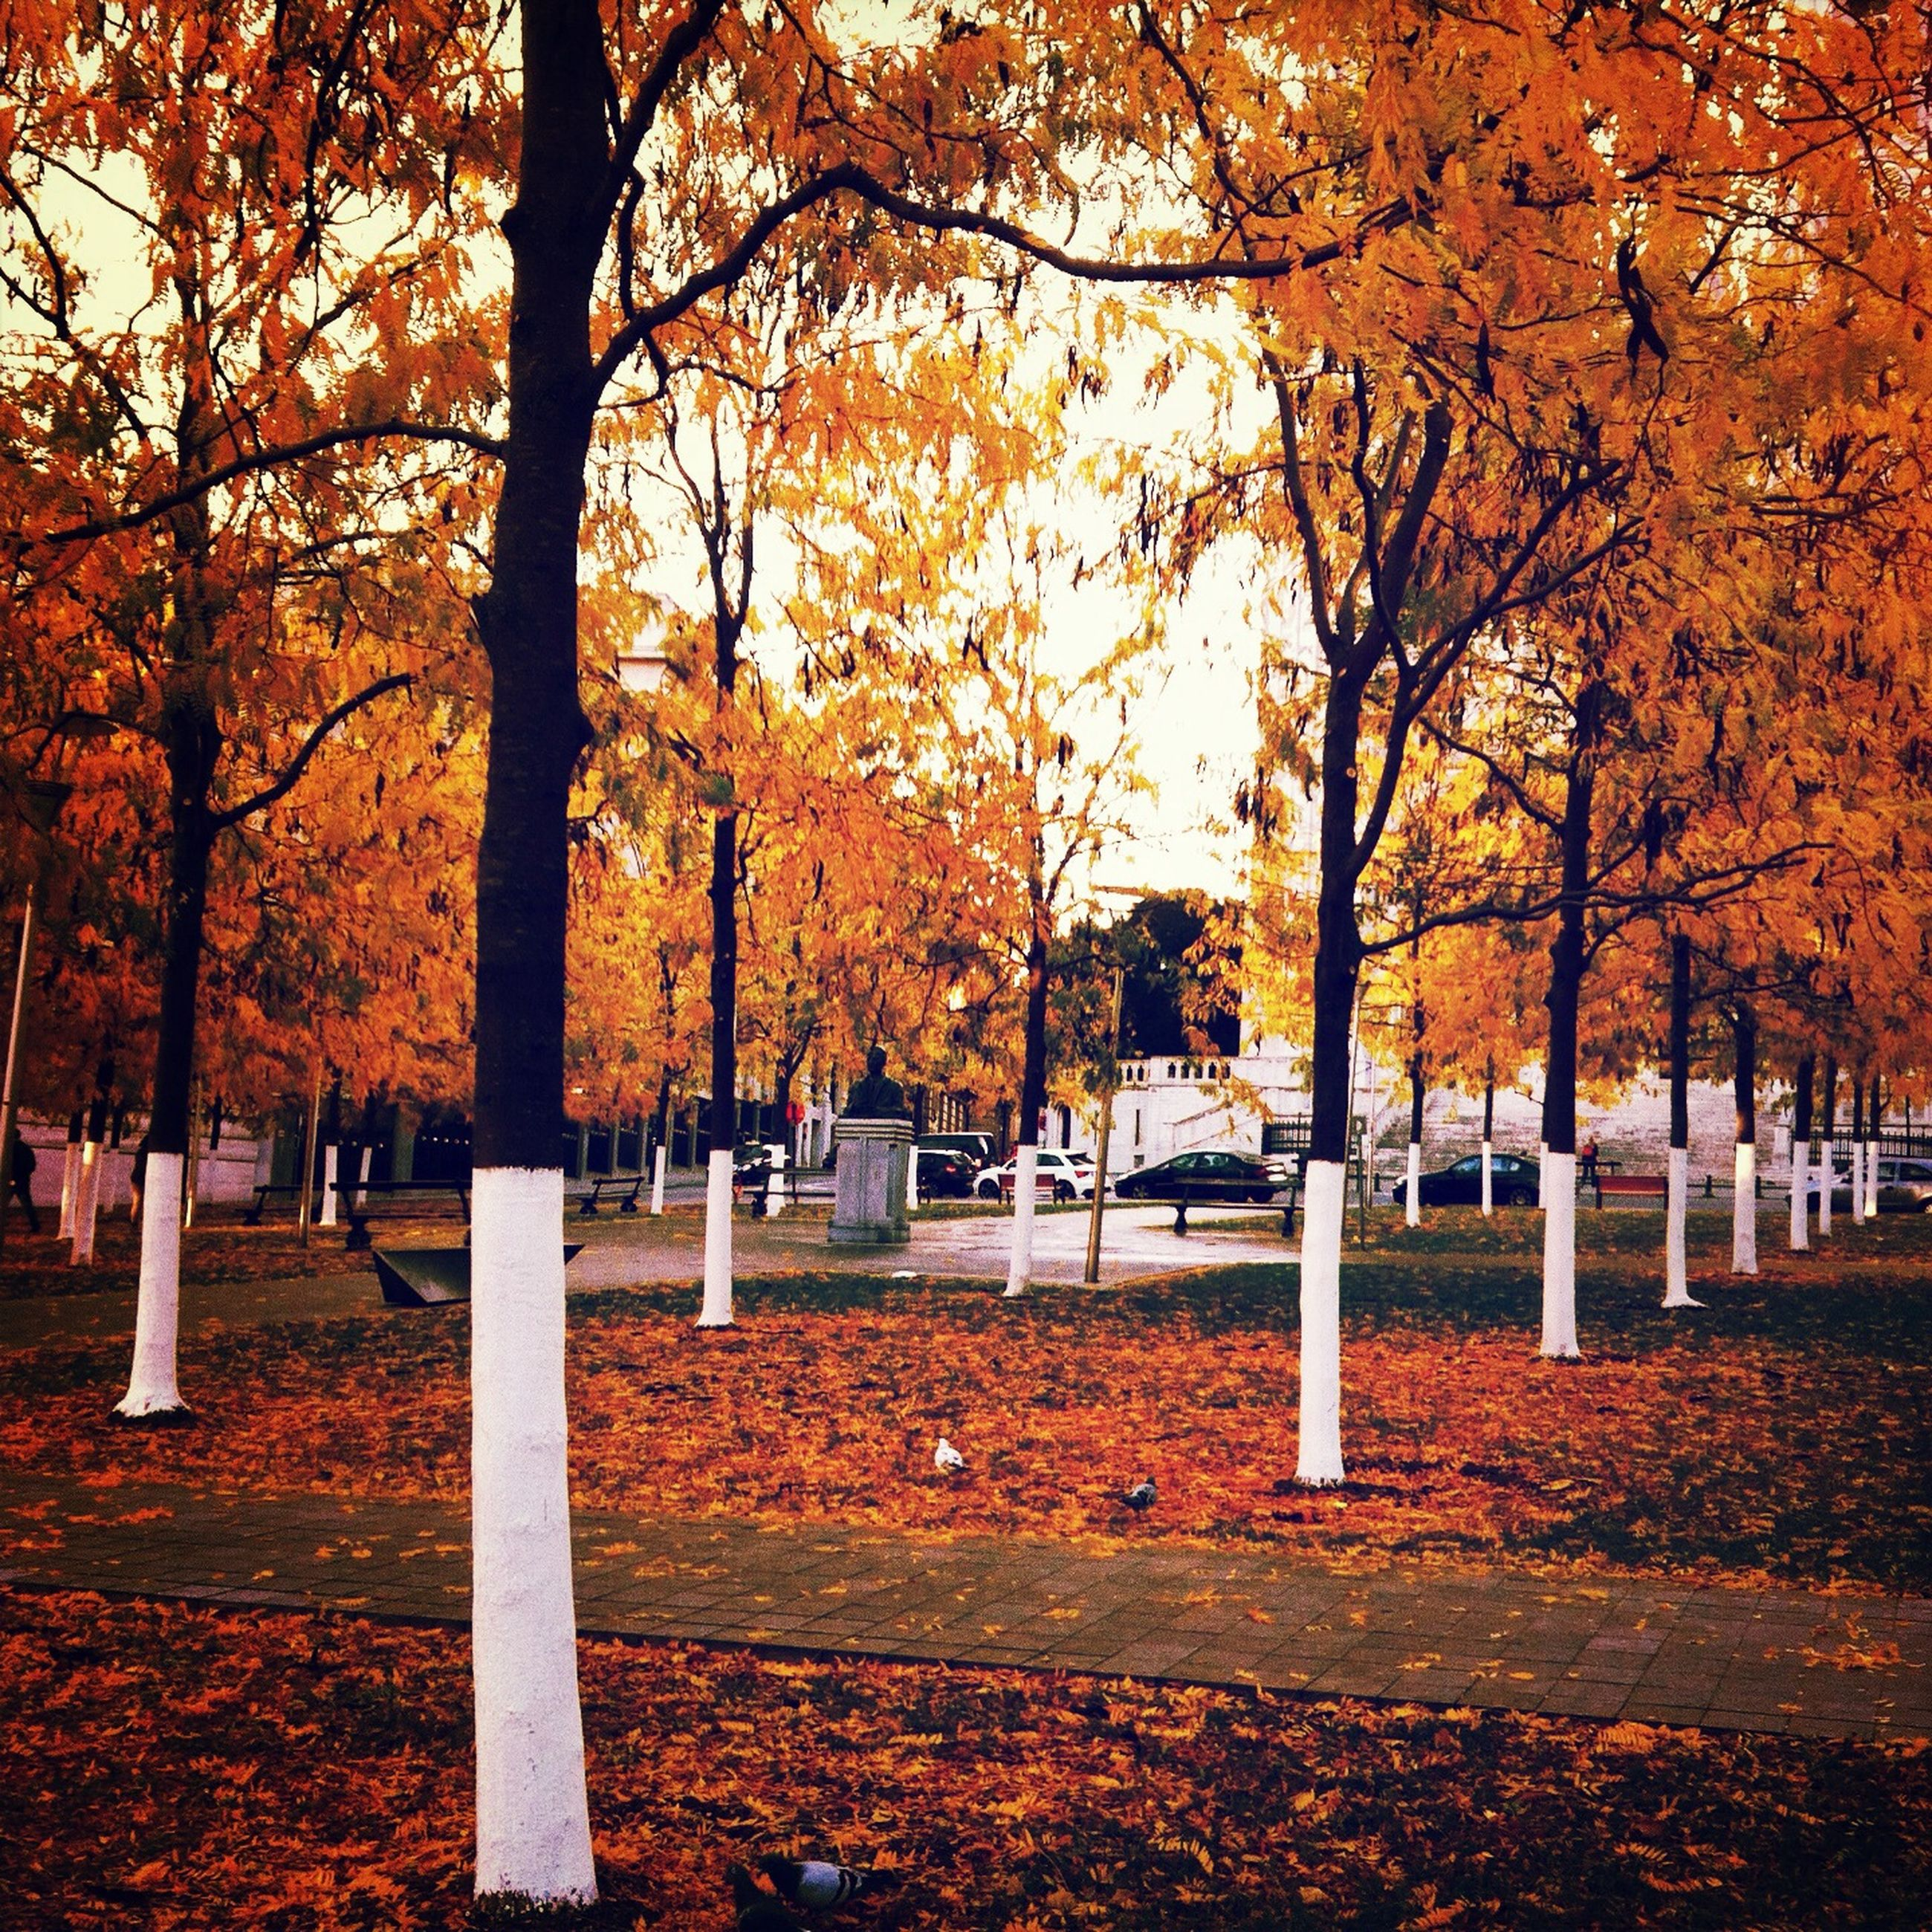 autumn, tree, change, season, orange color, park - man made space, leaf, yellow, growth, nature, park, branch, fallen, beauty in nature, tree trunk, tranquility, outdoors, day, incidental people, fall